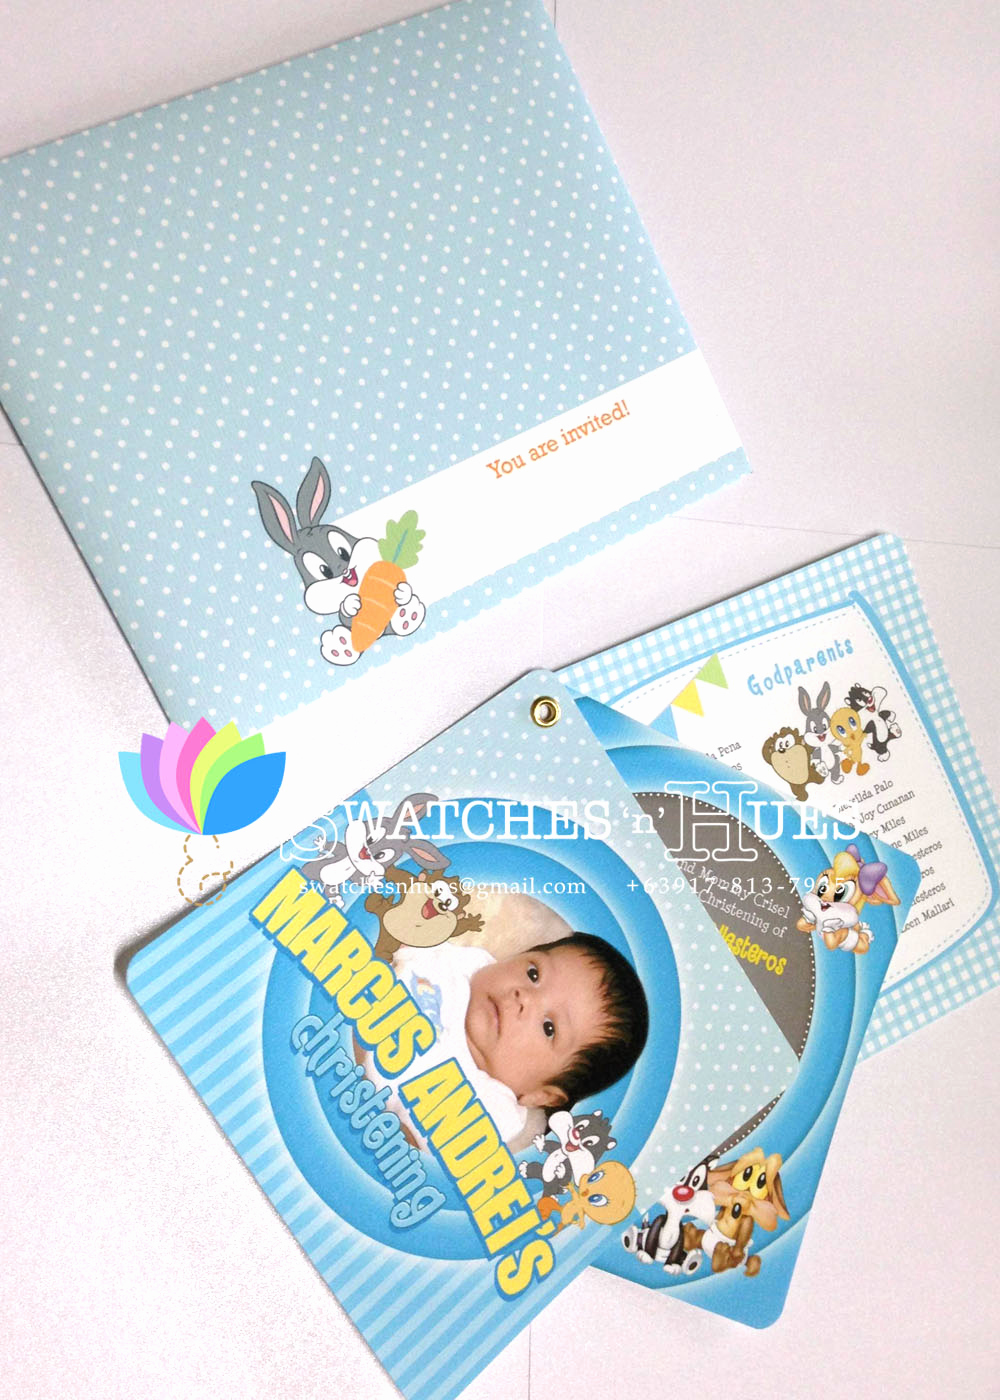 Baby Looney Tunes Invitation Awesome Swatches & Hues Handmade with Tlc Looney Tunes Baby